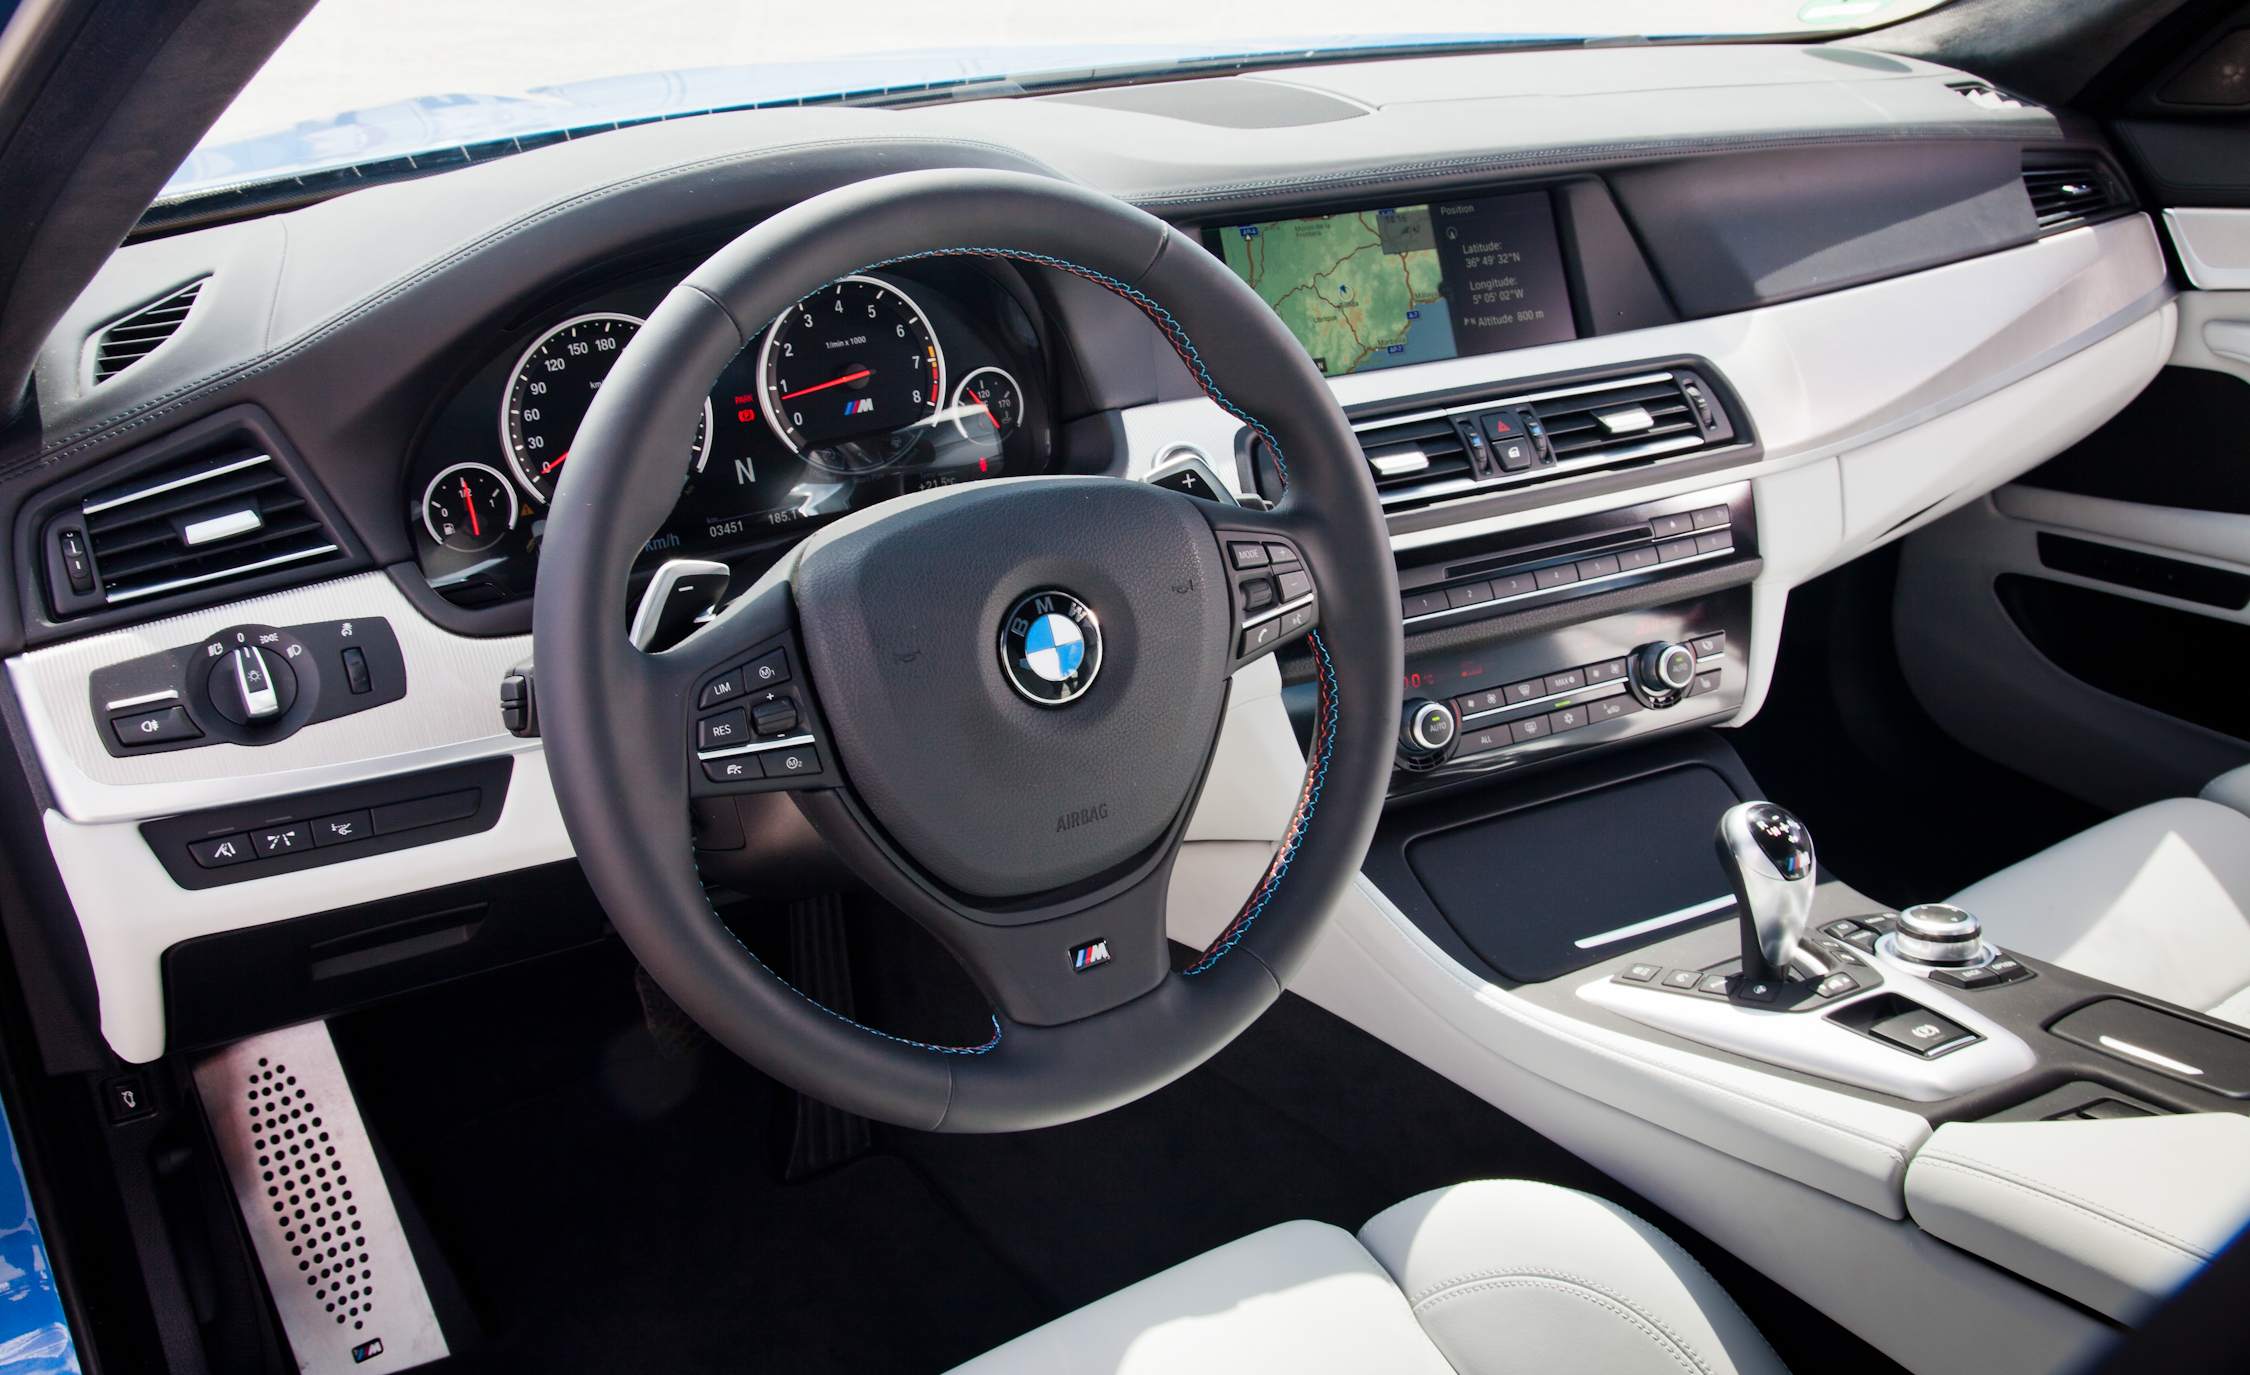 2013 BMW M5 Interior Driver Cockpit Steering And Dash (View 13 of 22)